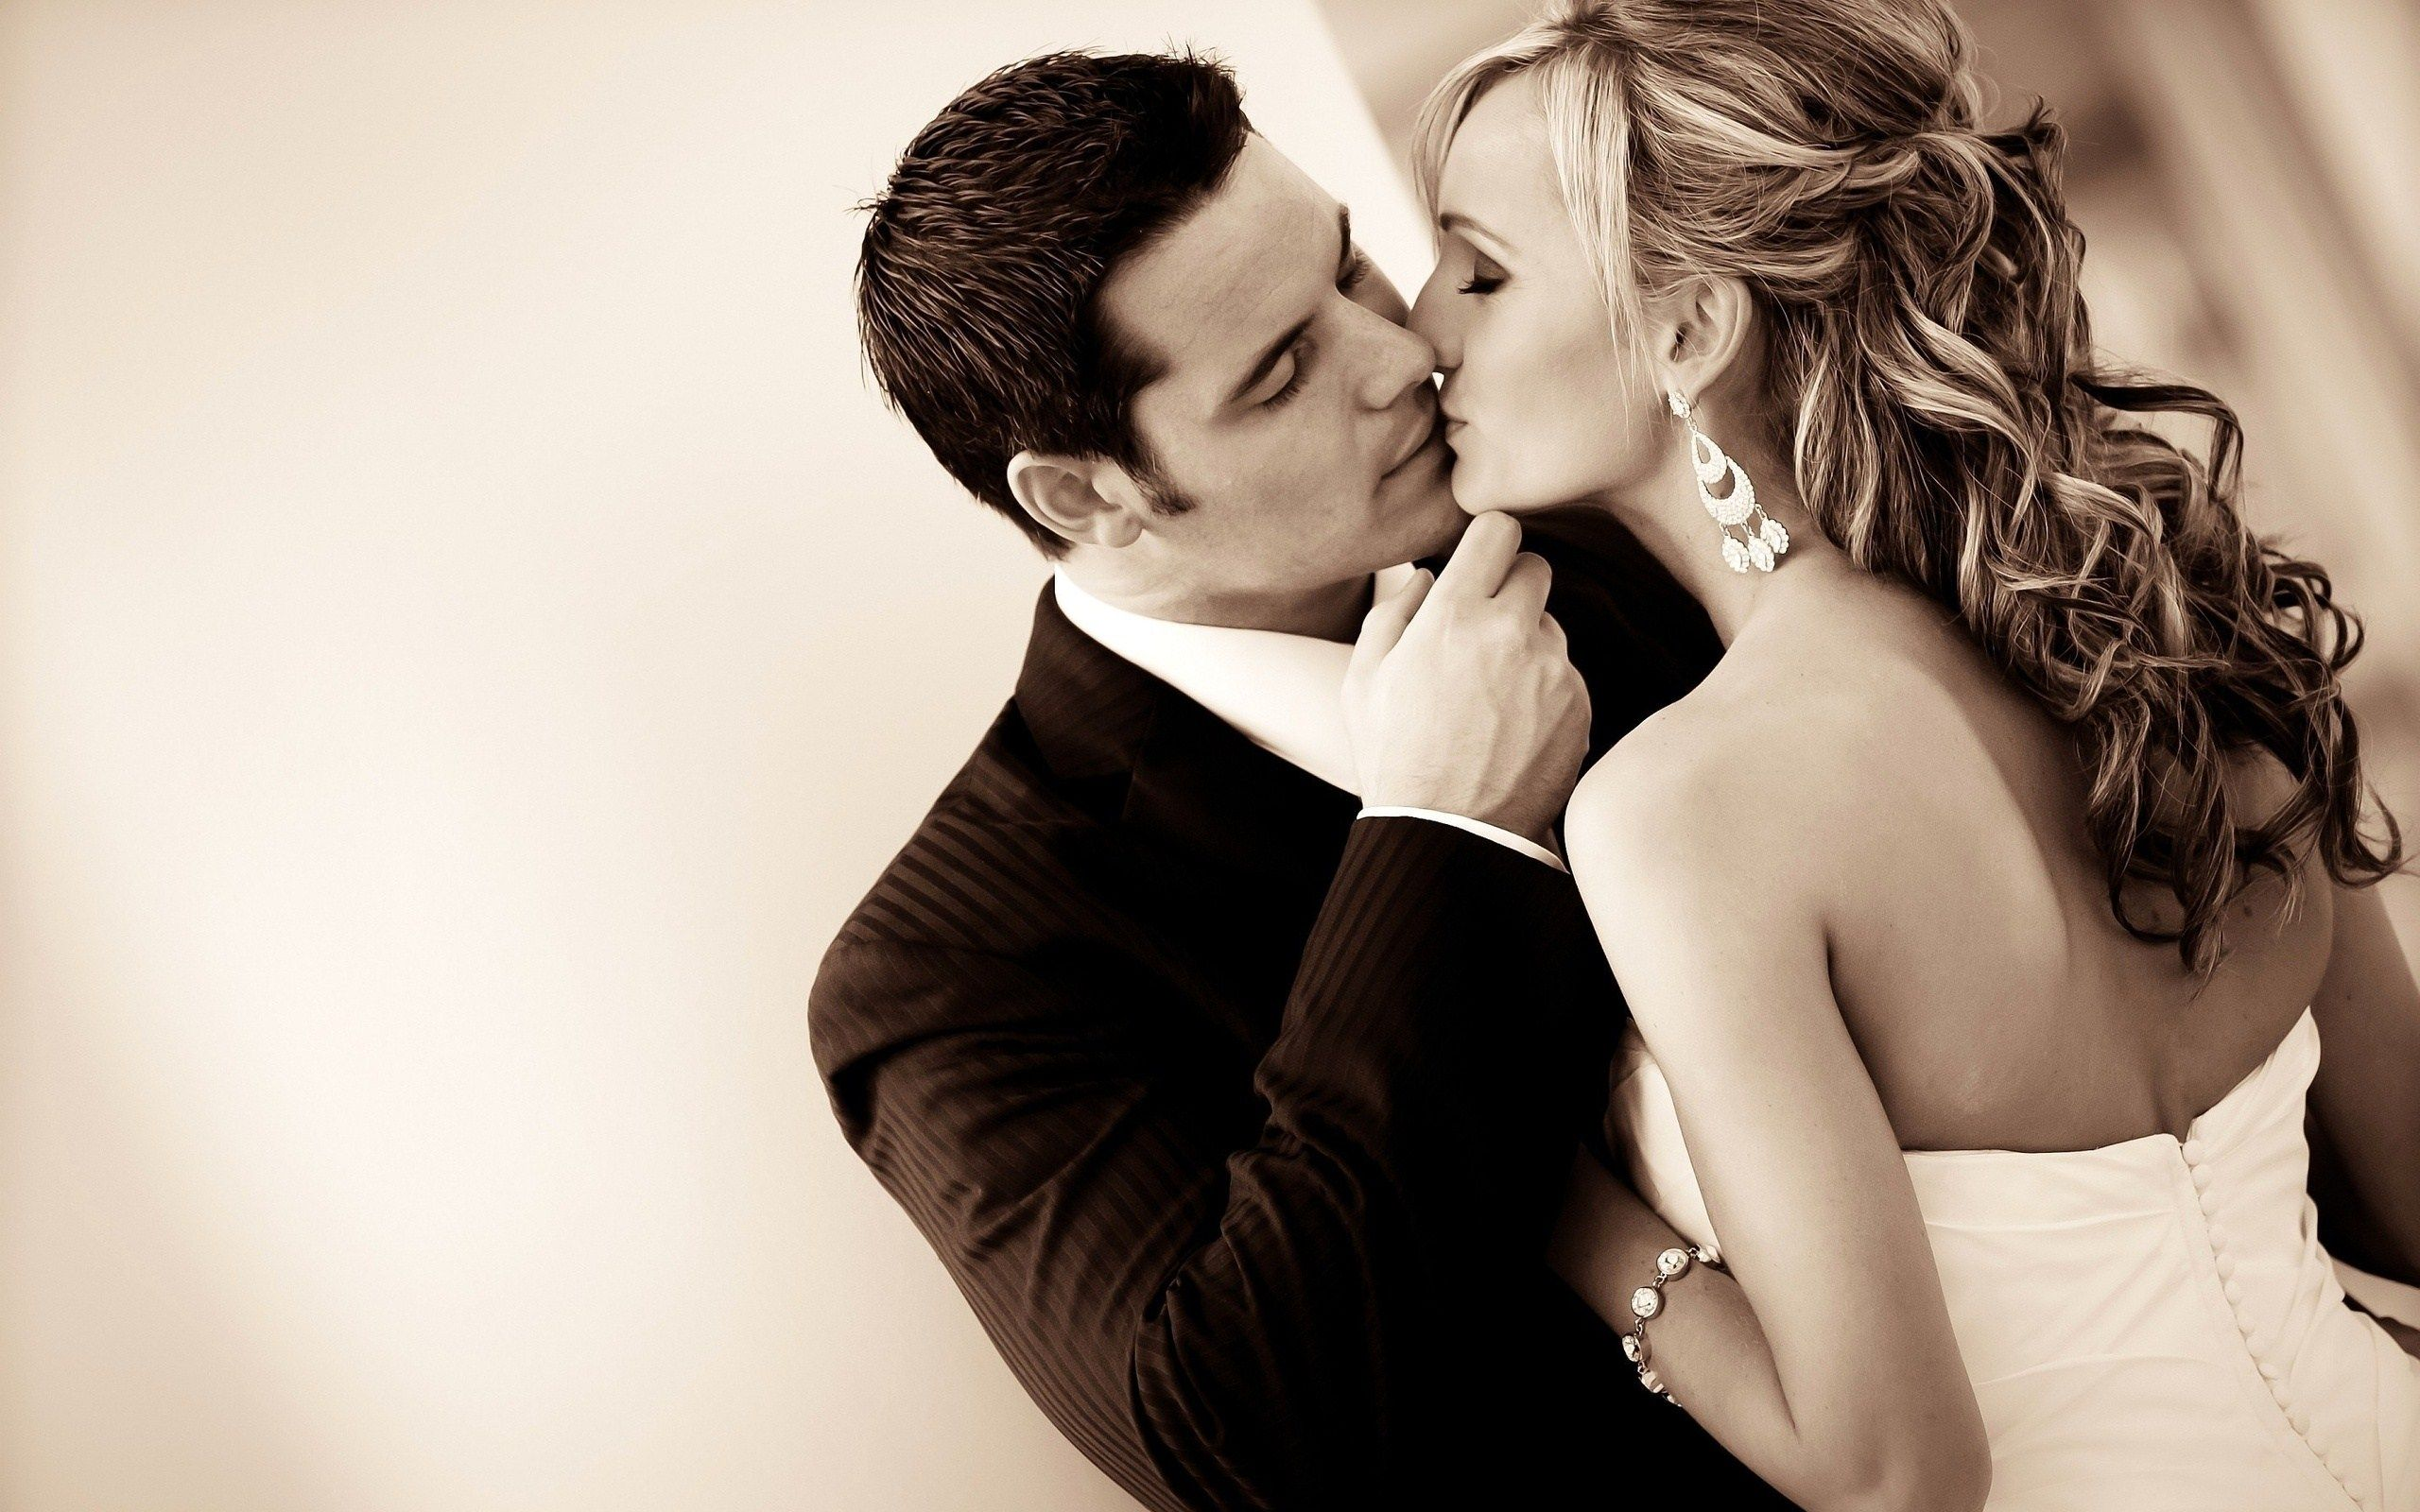 Hd wallpaper love couple - Couple Kissing Hd Wallpapers Free Art Wallpapers